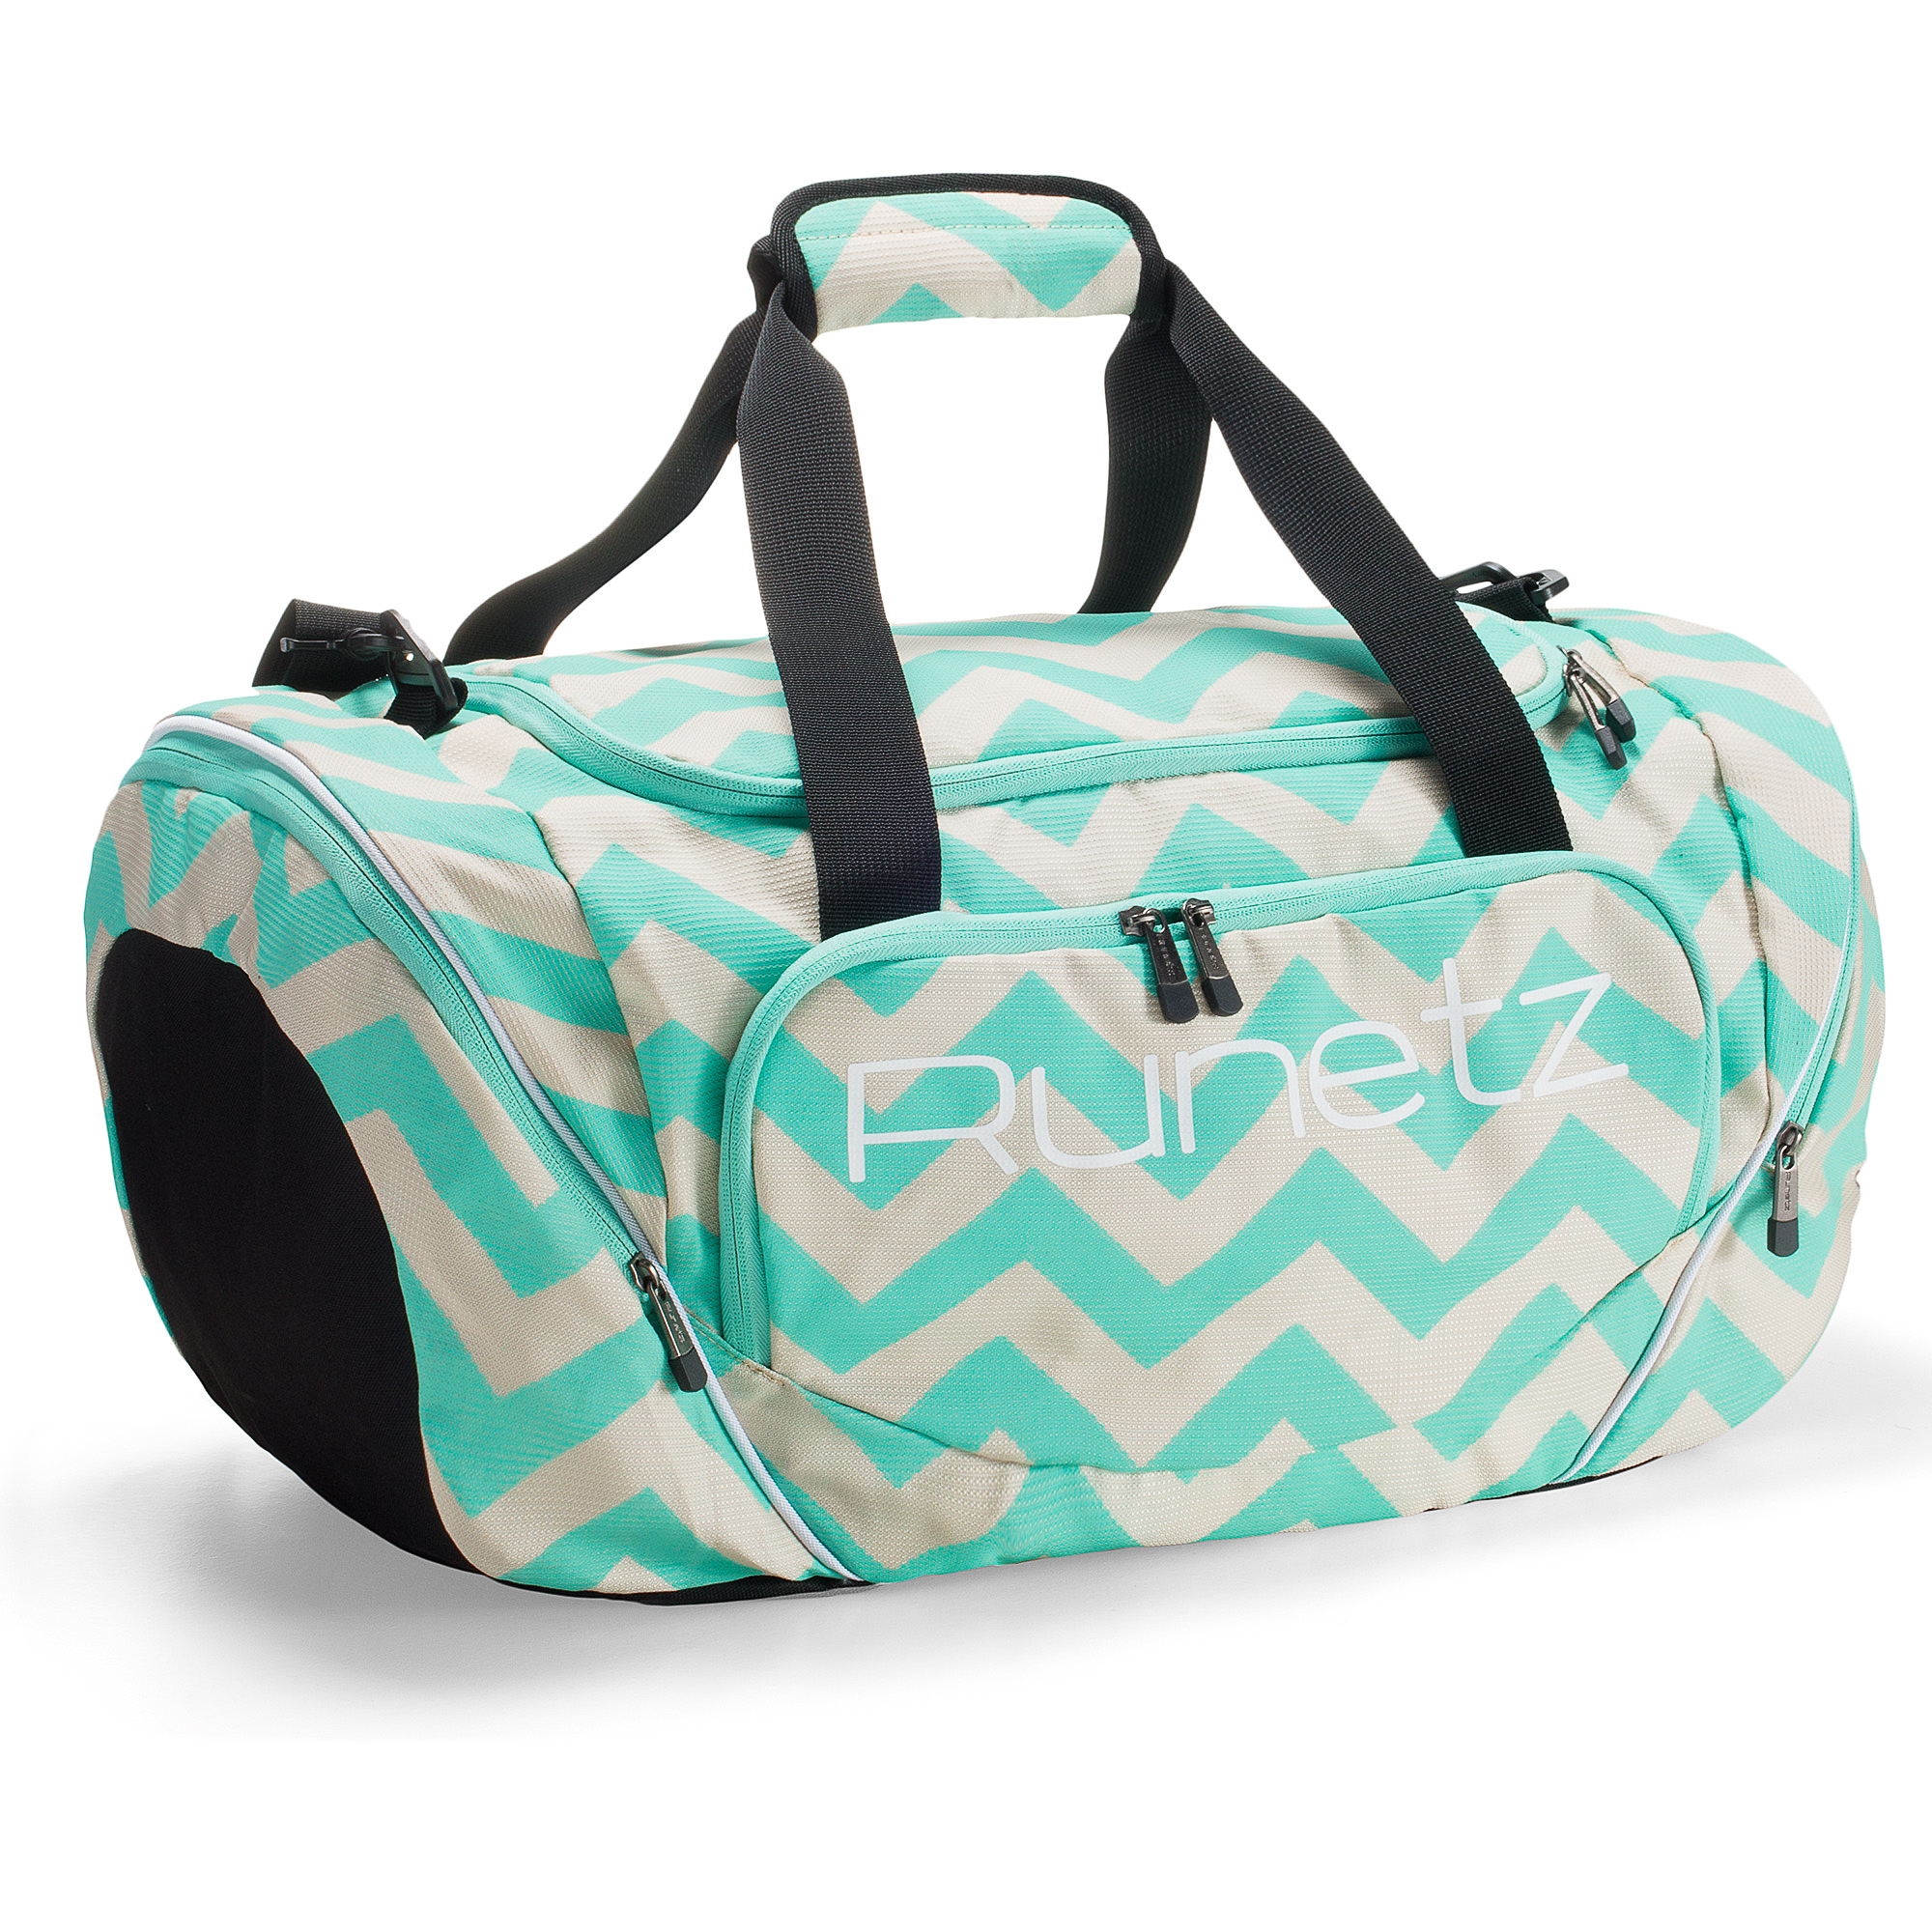 a332efca3c18 Details about Gym Bag for Women Duffel 20